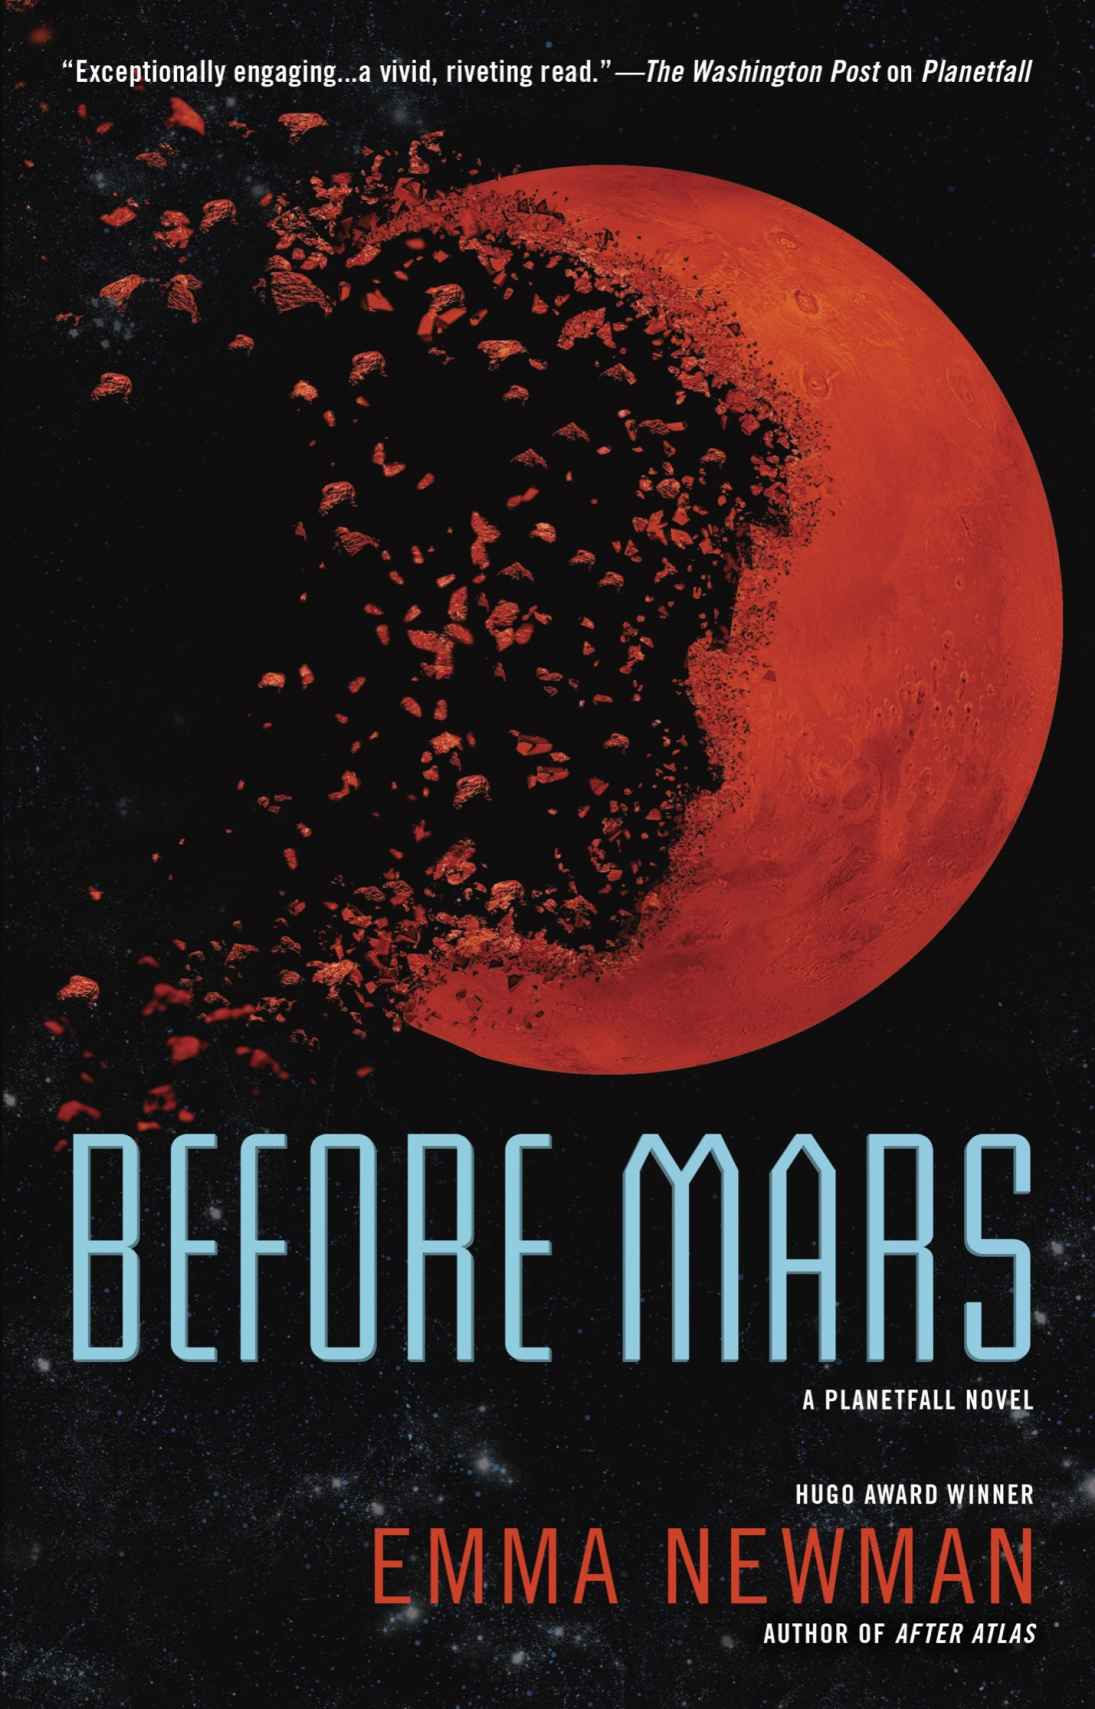 'Before Mars' review: A psychological exploration on a lonely planet